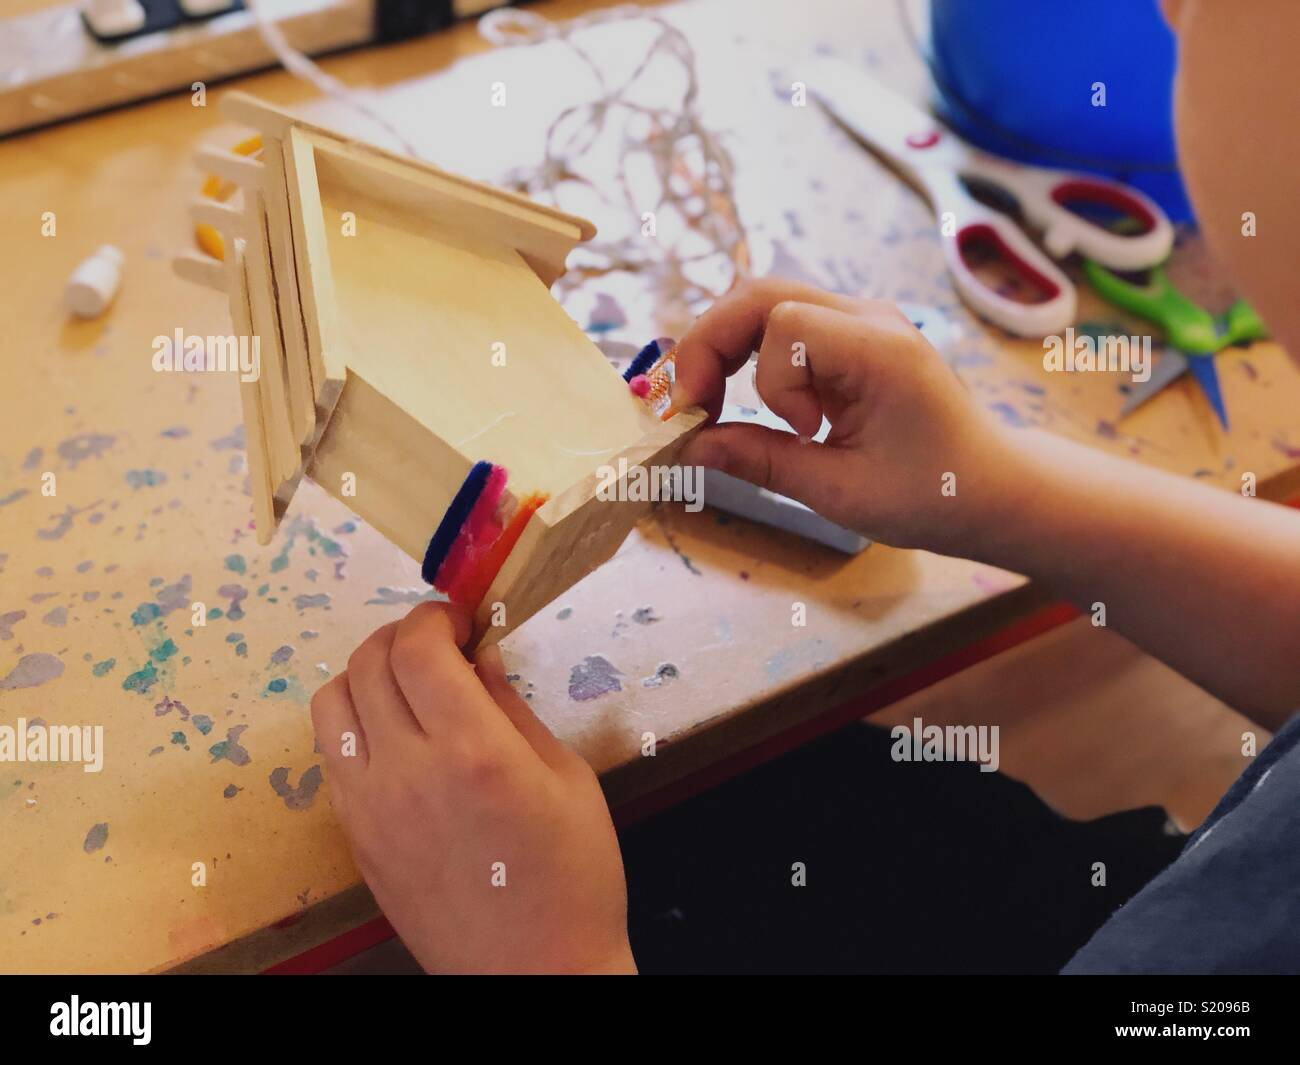 Boy crafting focus on hands Stock Photo